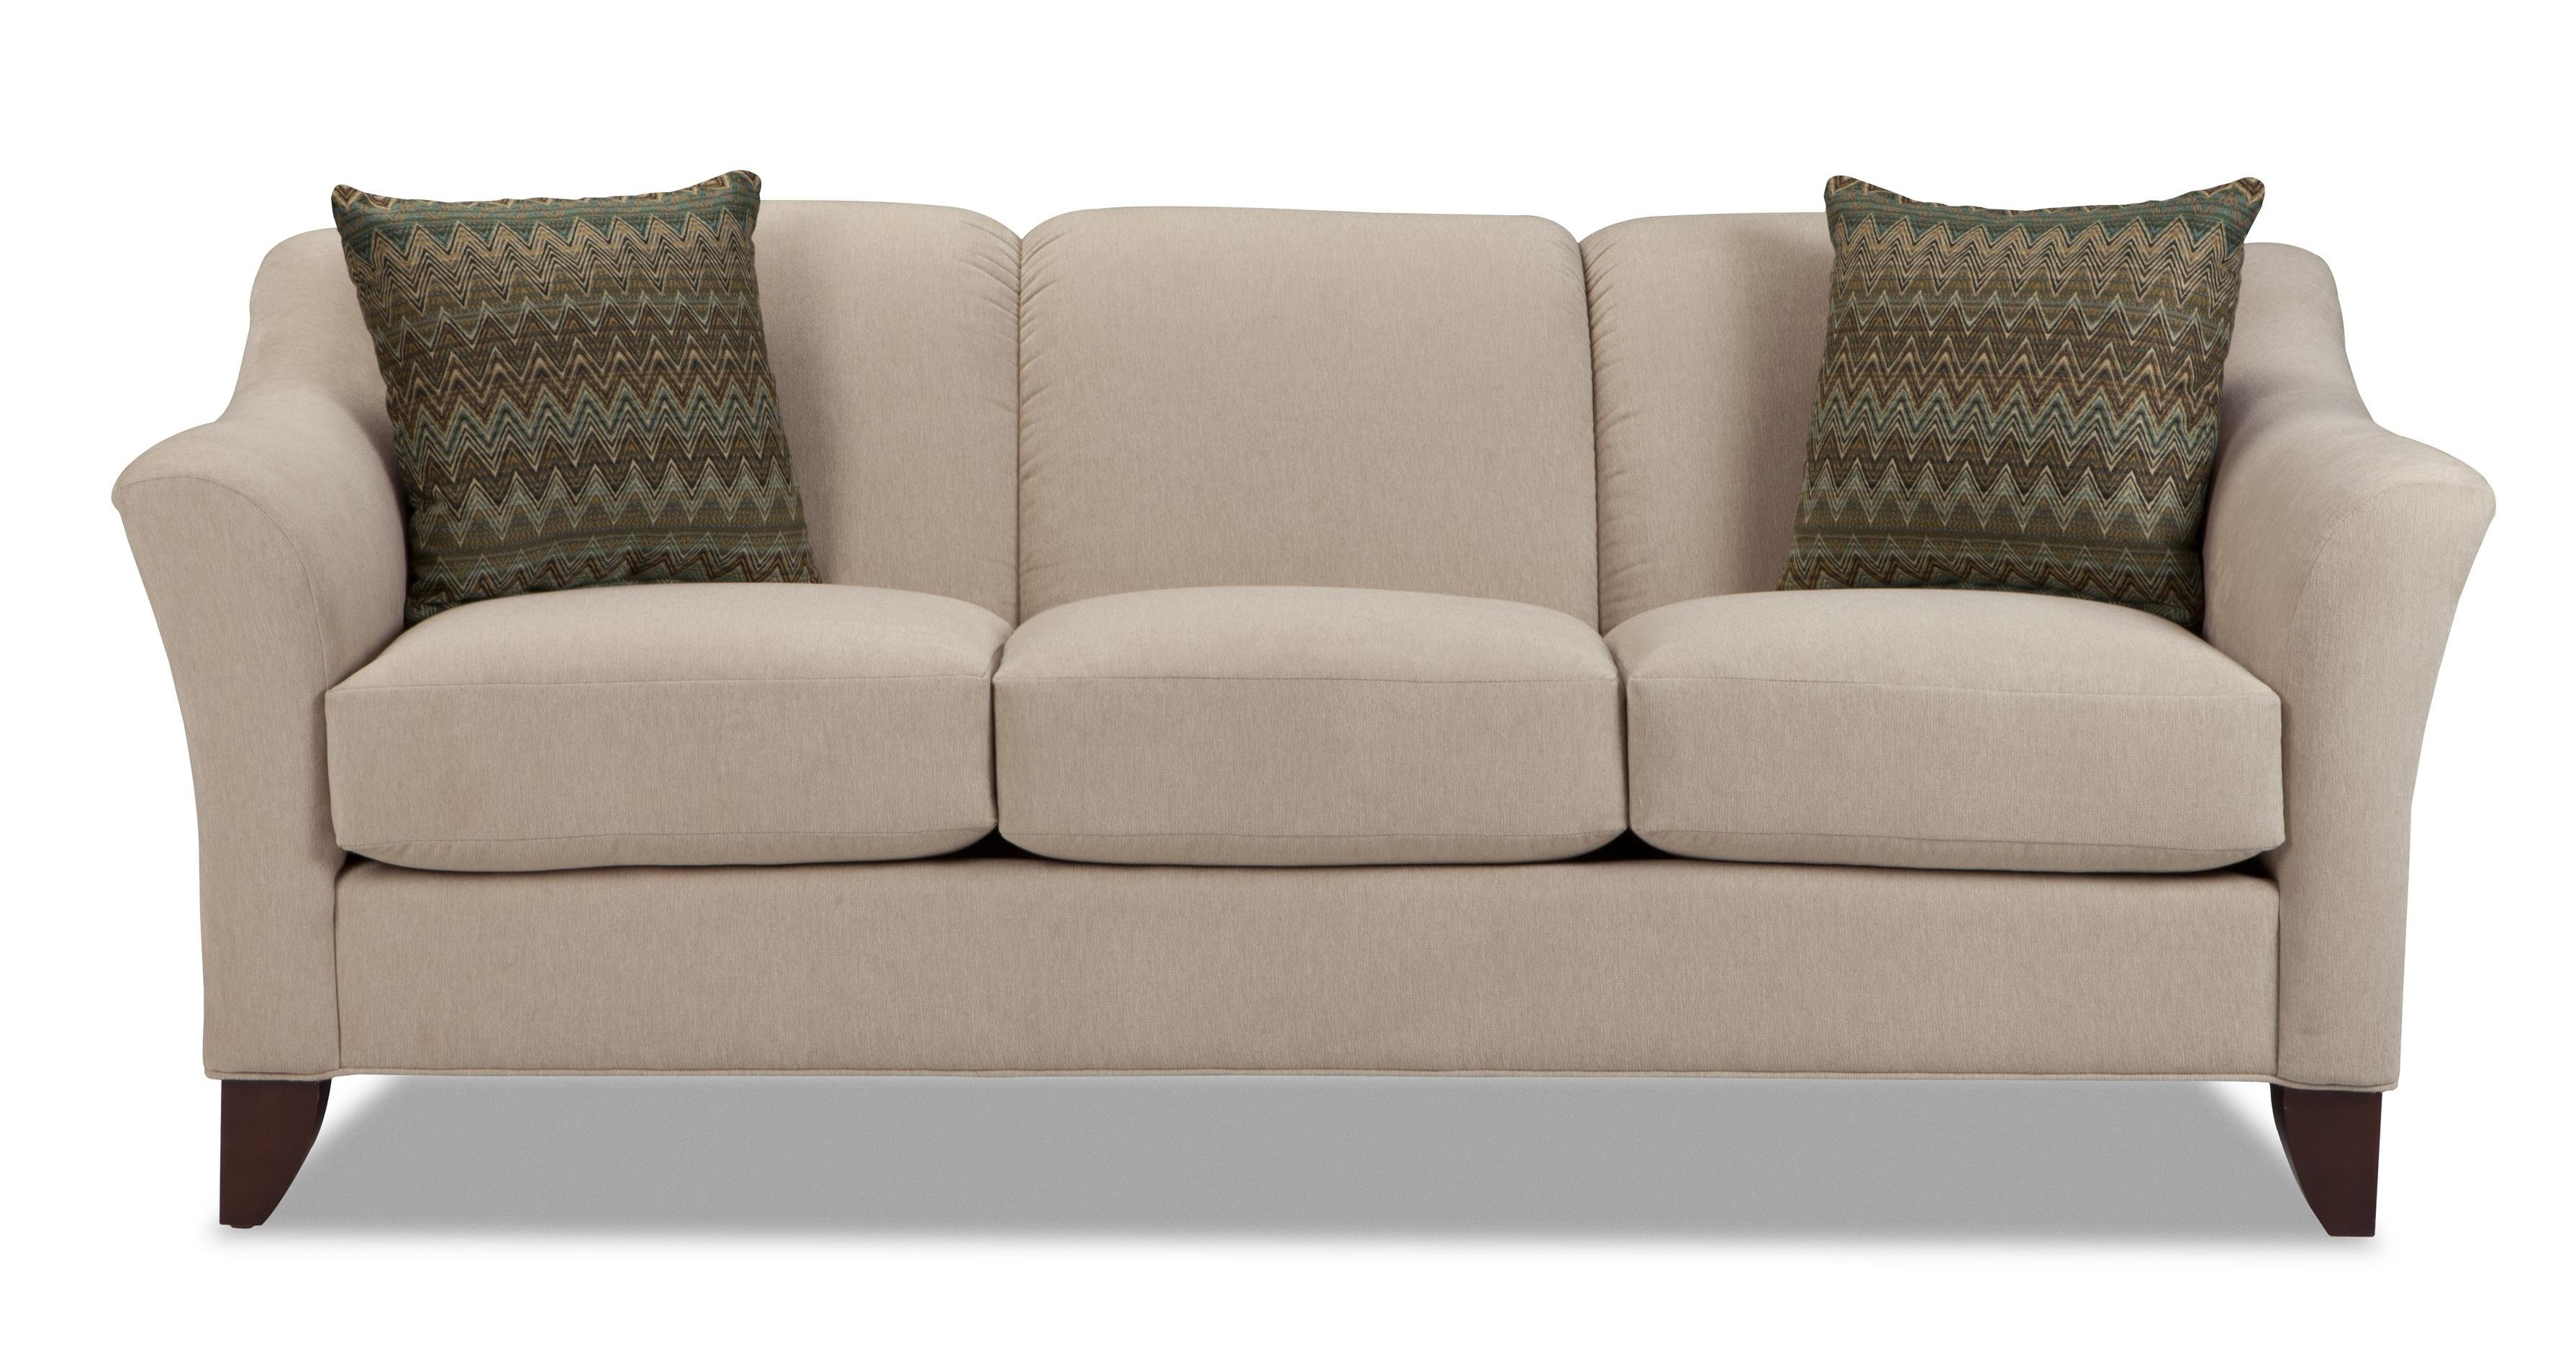 7844 Stationary Sofa by Craftmaster at Dunk & Bright Furniture